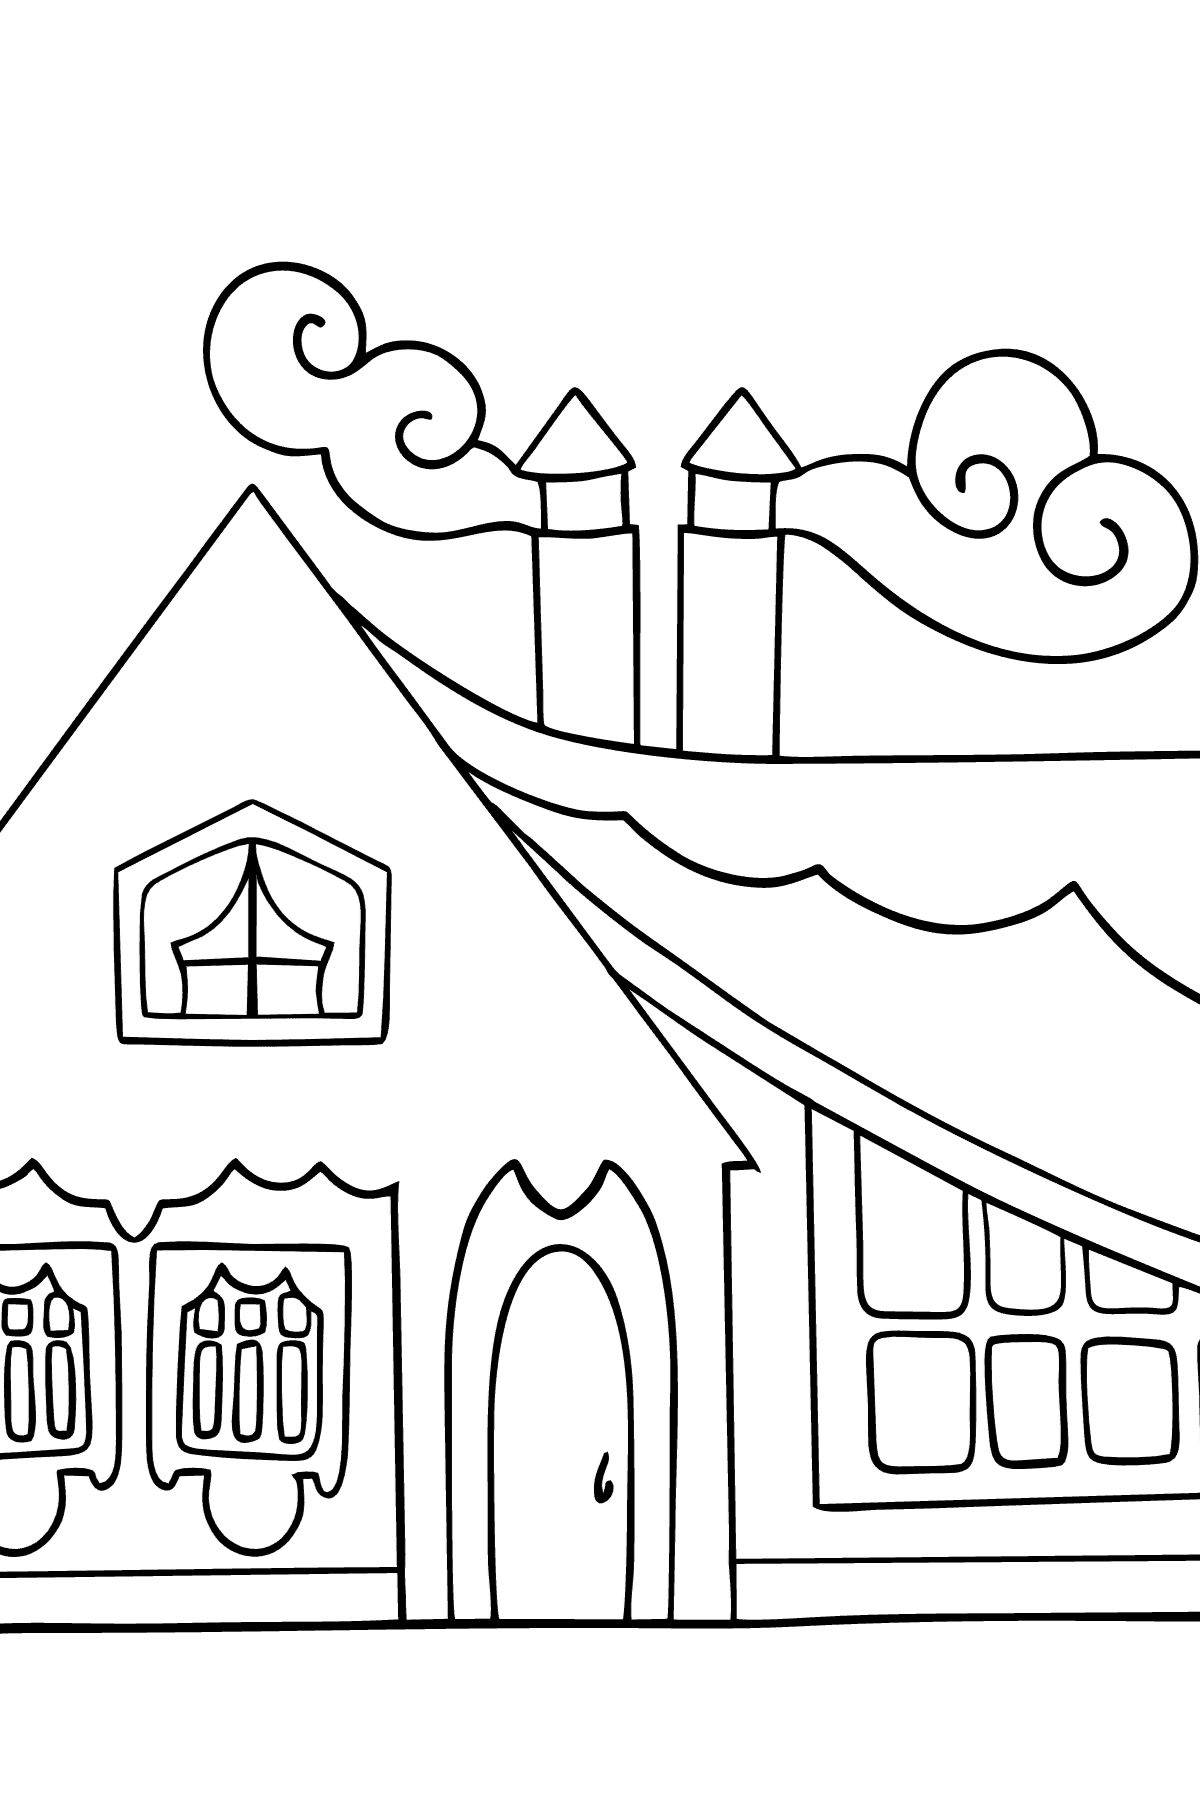 Simple Coloring Page - A Tiny House for Kids